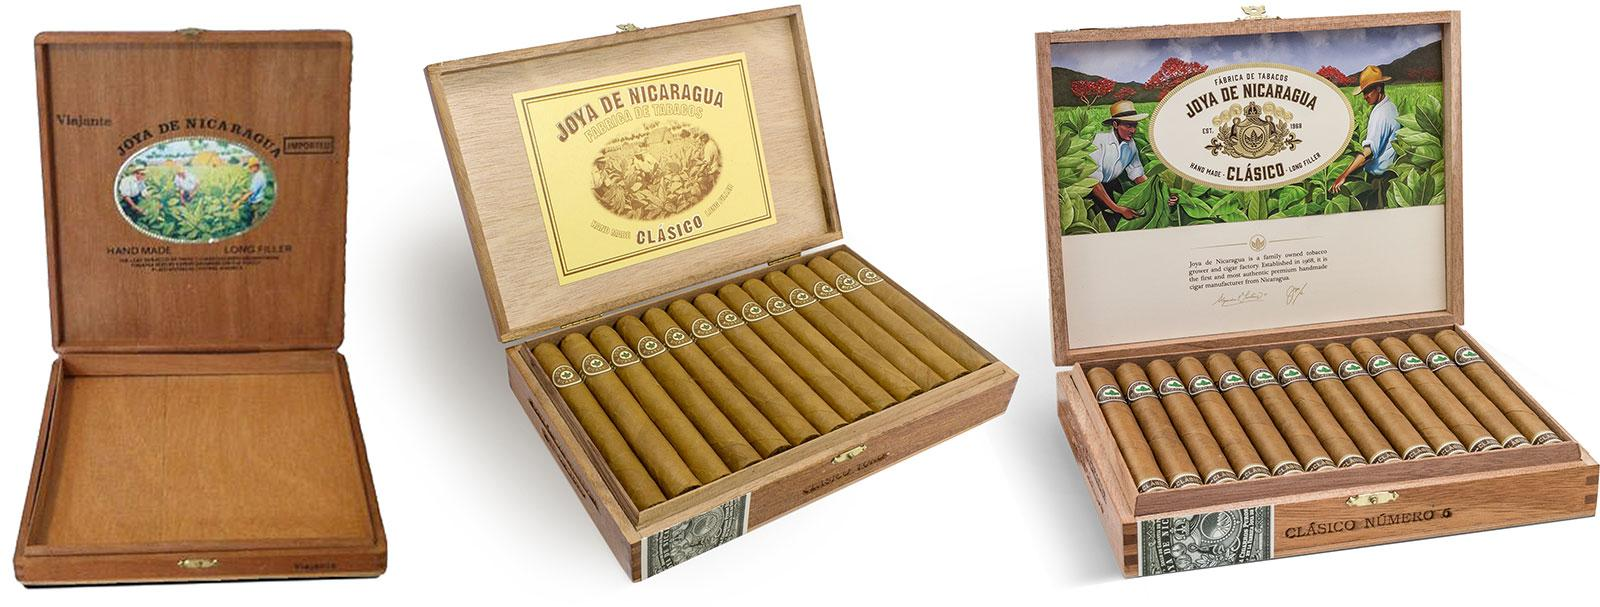 The redesigned packaging of Joya de Nicaragua Clásico, right, pays homage to the brand's previous iterations, left and center.